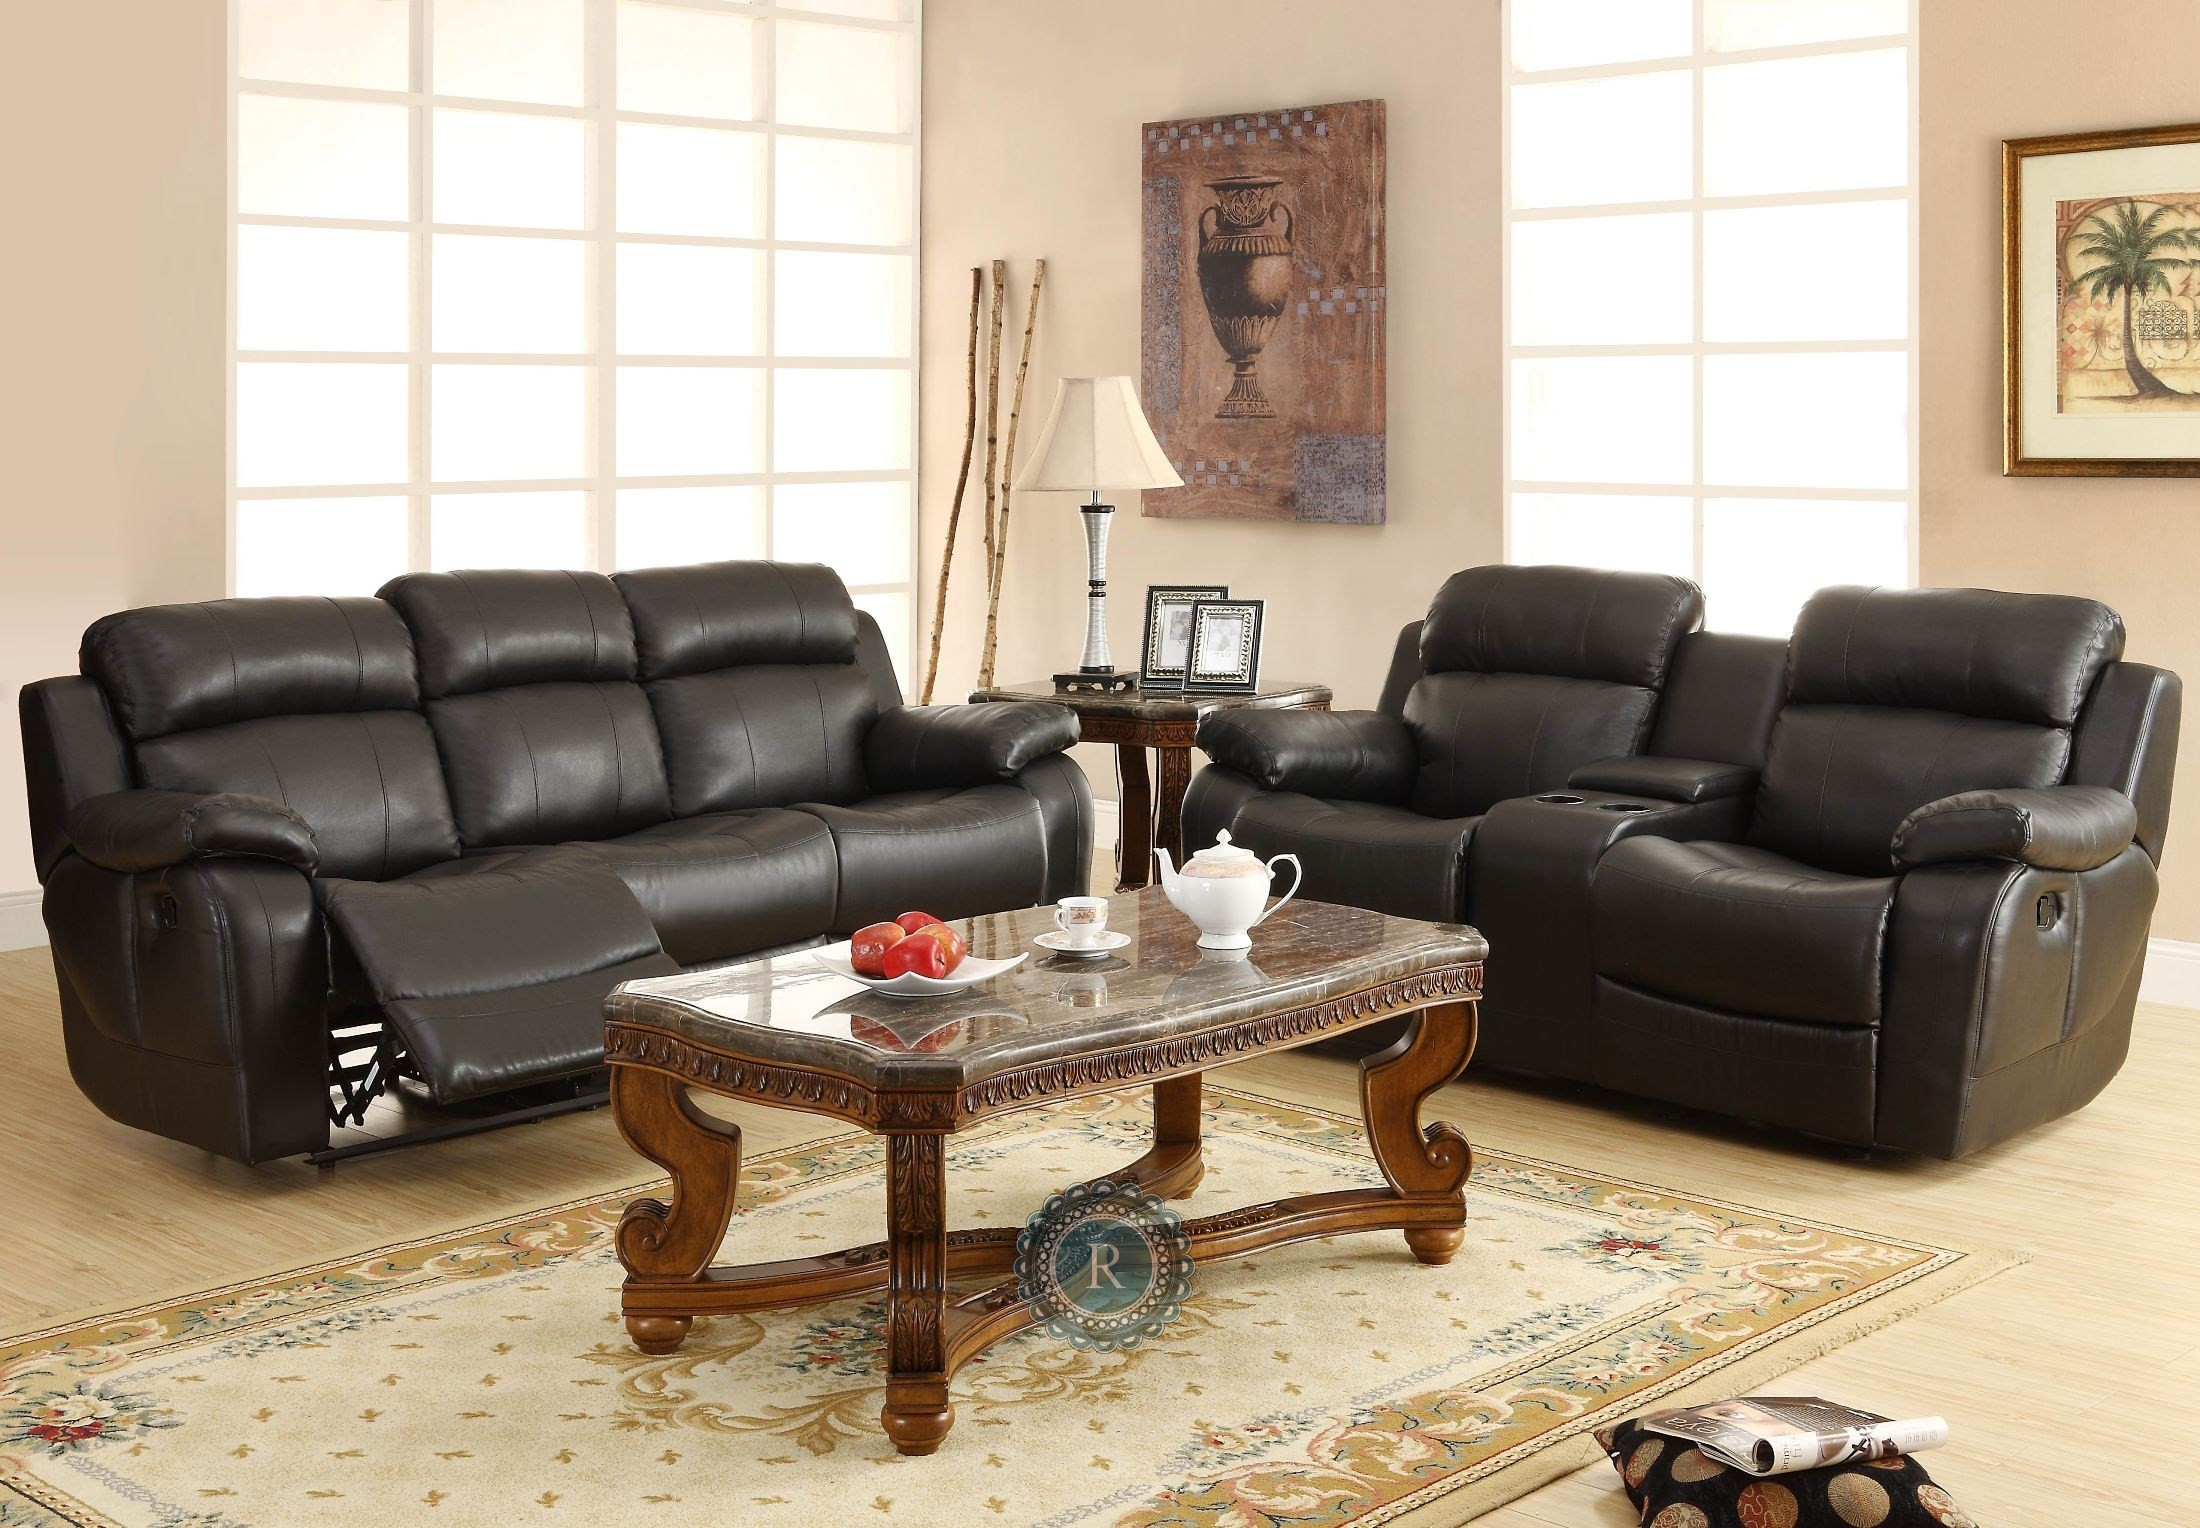 Marille Black Double Glider Reclining Loveseat With Center Console From Homelegance 9724blk 2